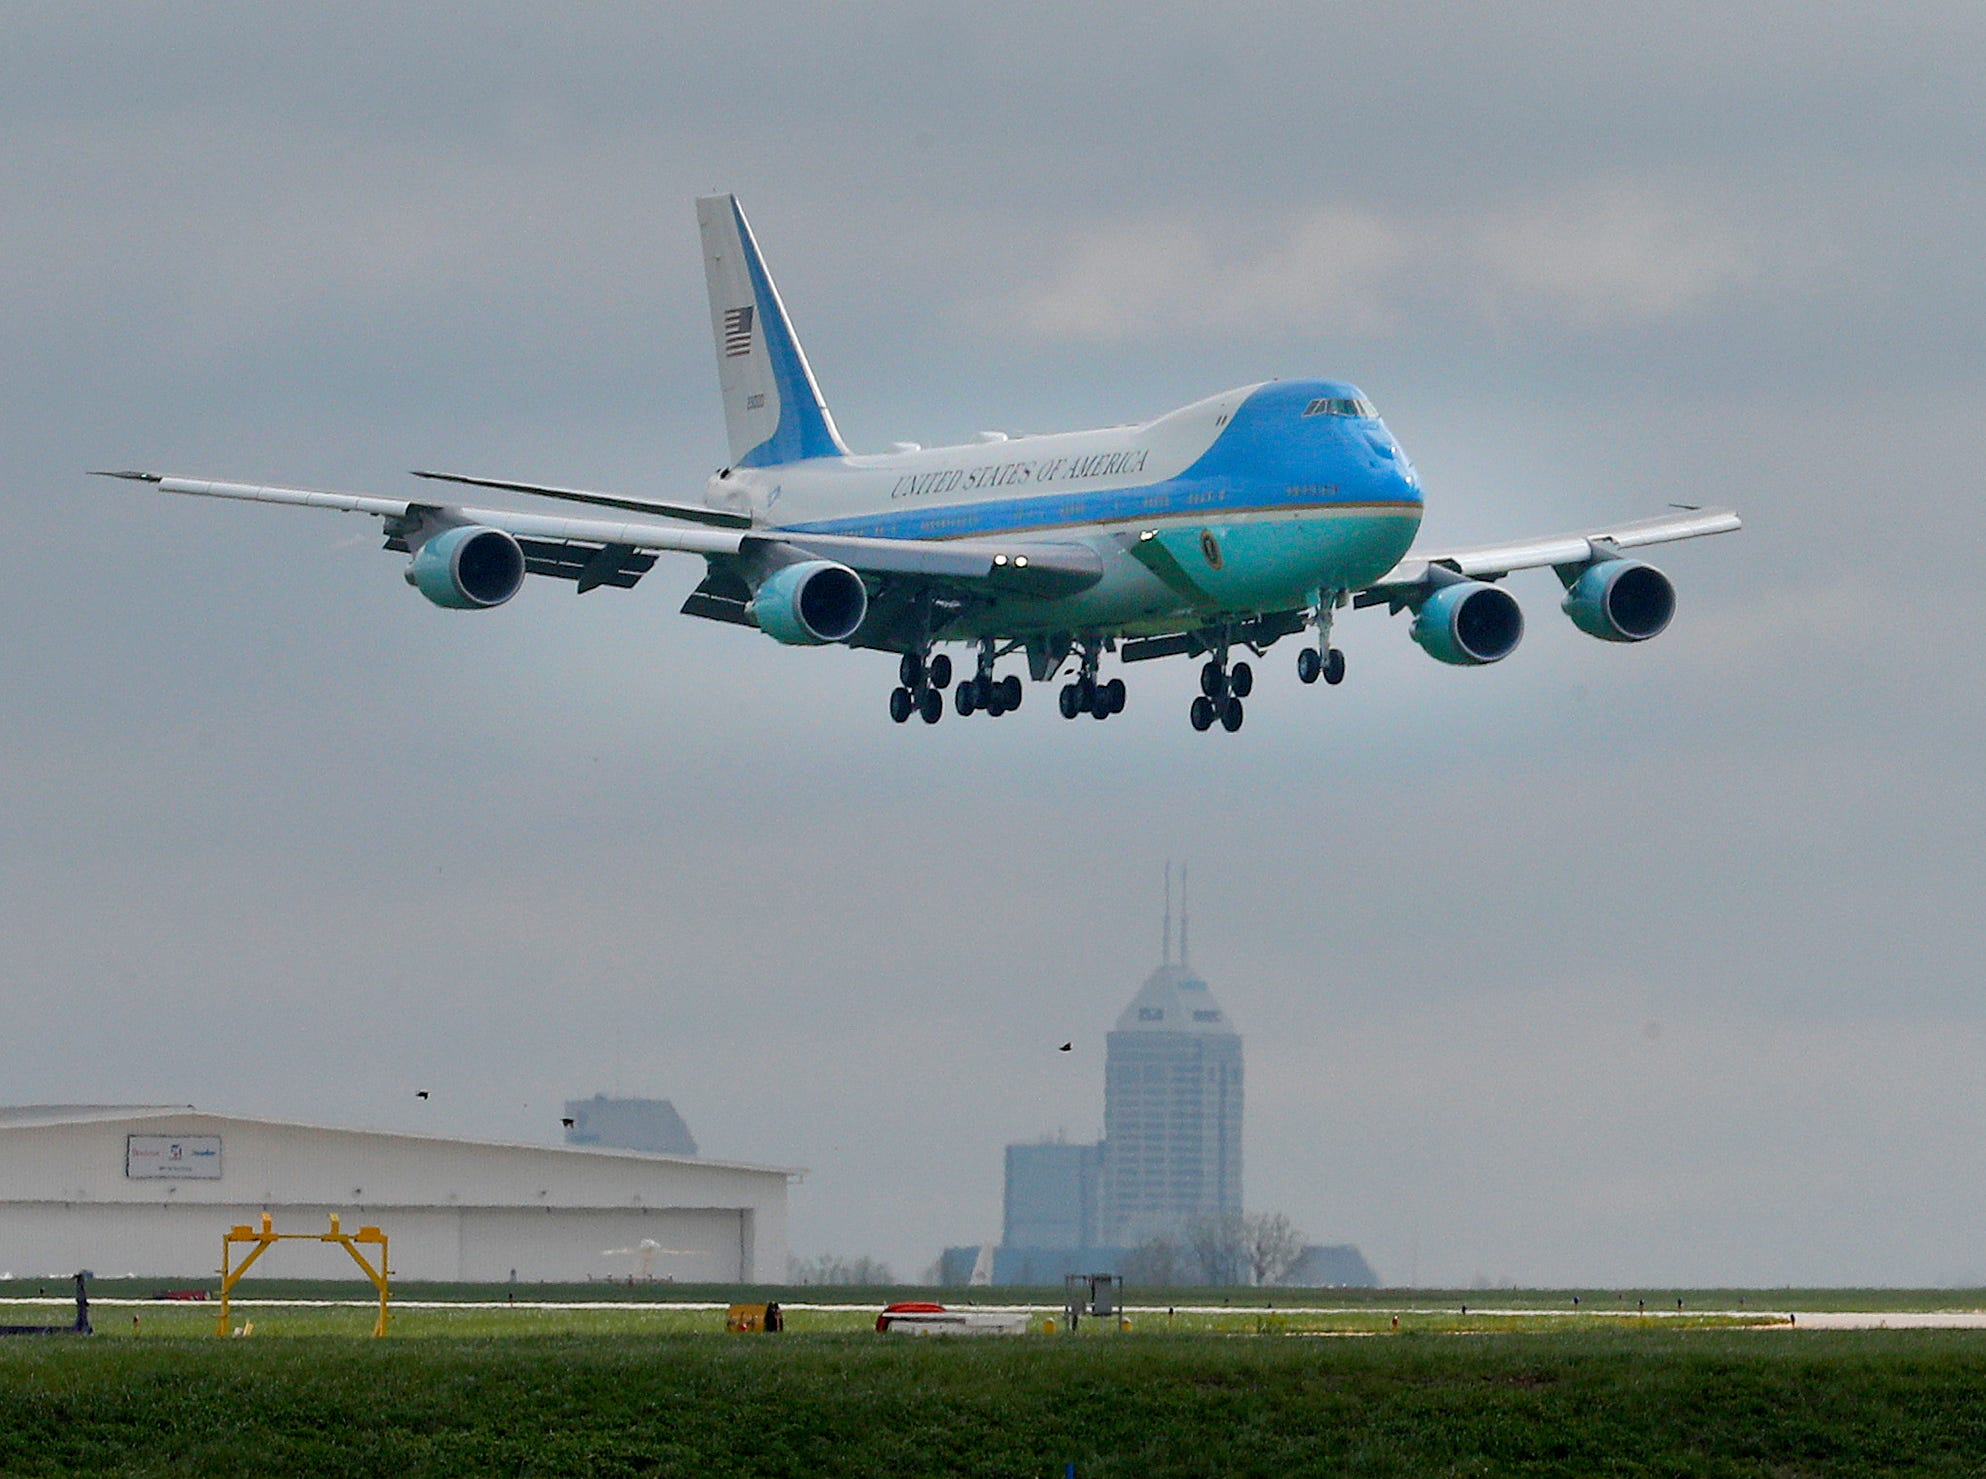 Air Force One with President Donald Trump aboard arrives at the Indianapolis International Airport. President Trump and VP Mike Pence spoke at the NRA-ILA Leadership Forum at Lucas Oil Stadium on Friday, April 26, 2019.